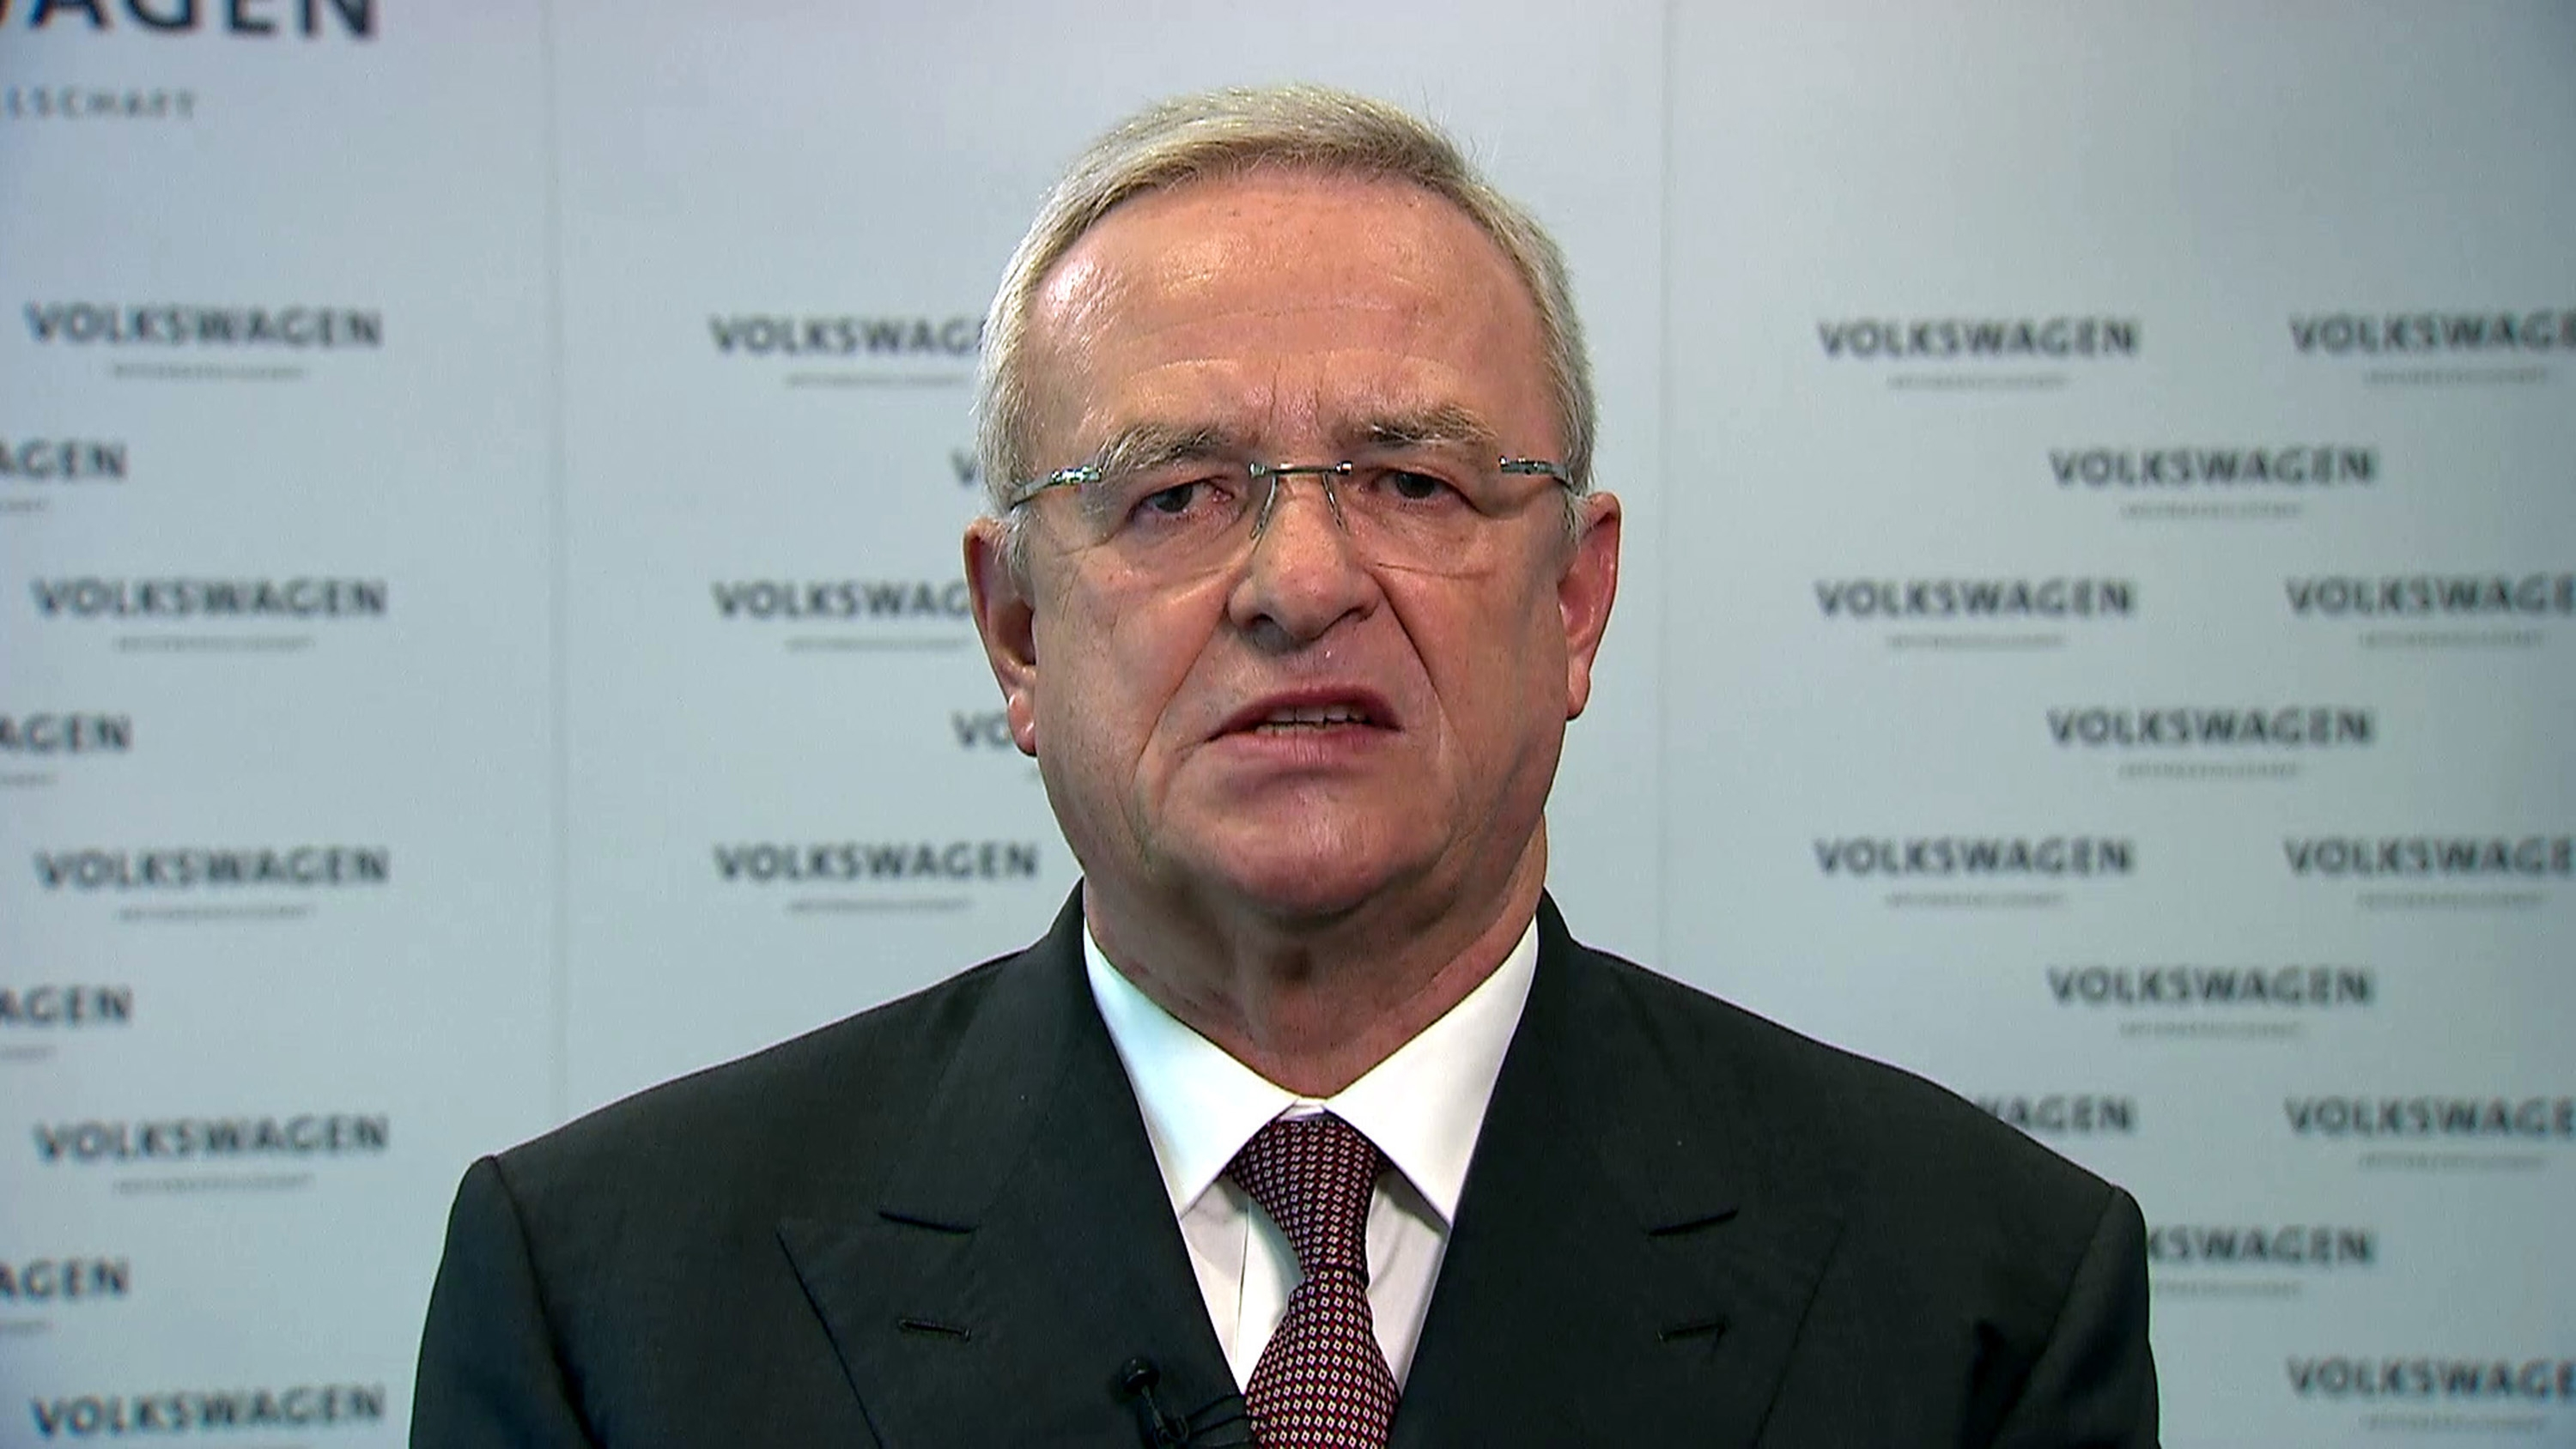 Volkswagen CEO Martin Winterkorn resigned on Wednesday after the company admitted it had cheated for years on EPA emissions tests.